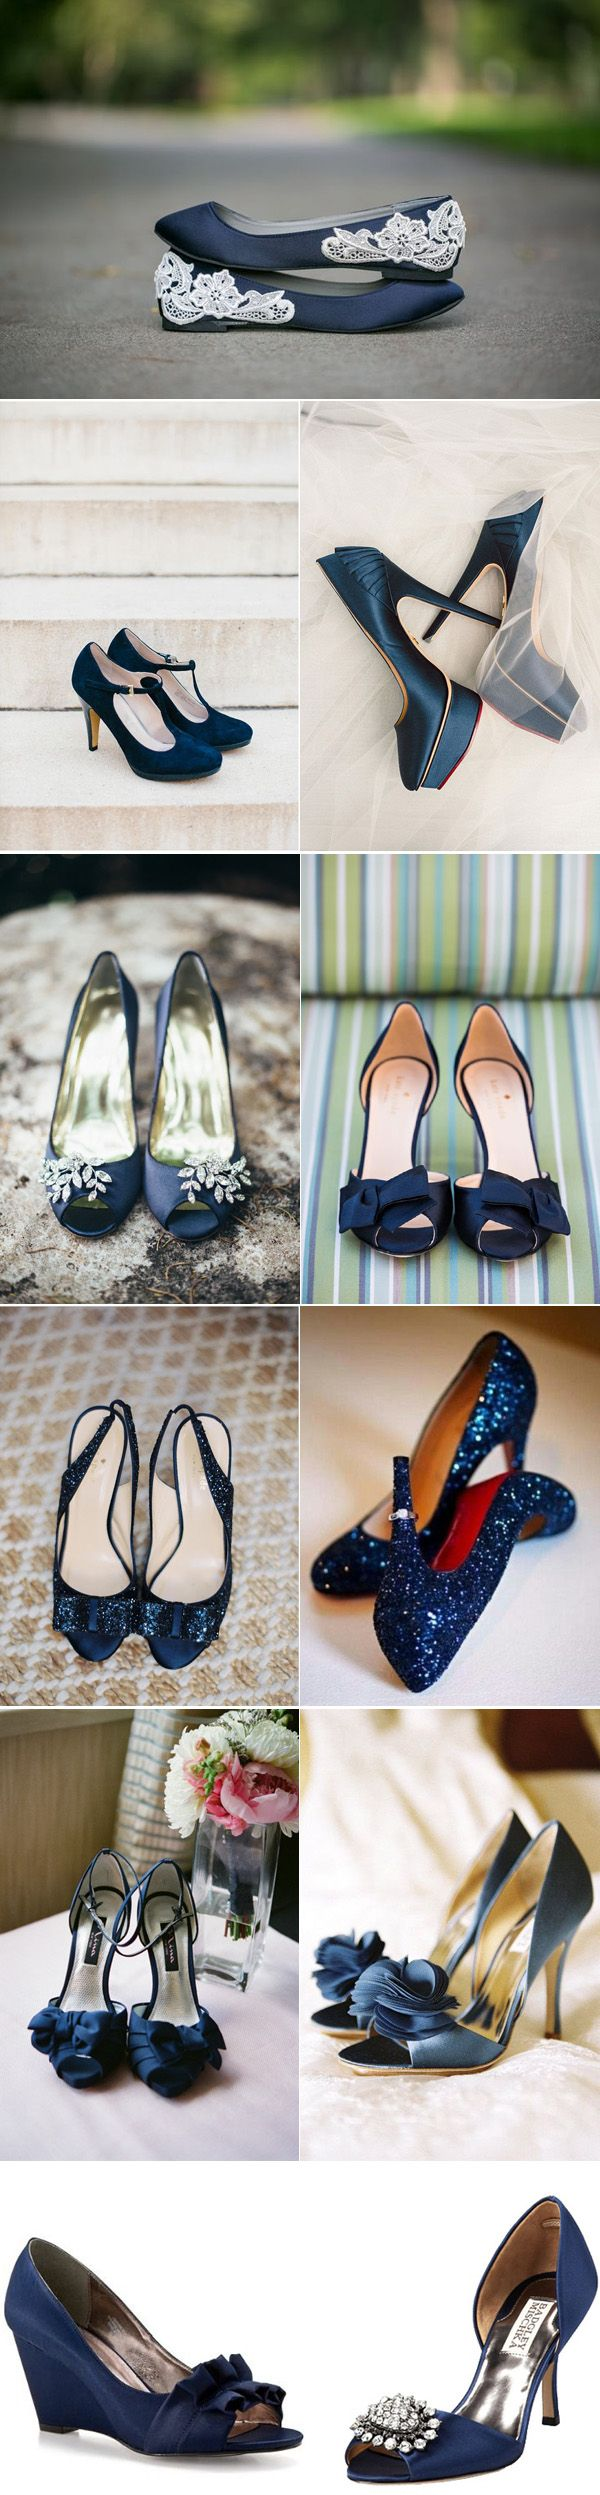 45 chic blue wedding shoes for bridal blue wedding shoes 45 chic blue wedding shoes for bridal ombrellifo Images